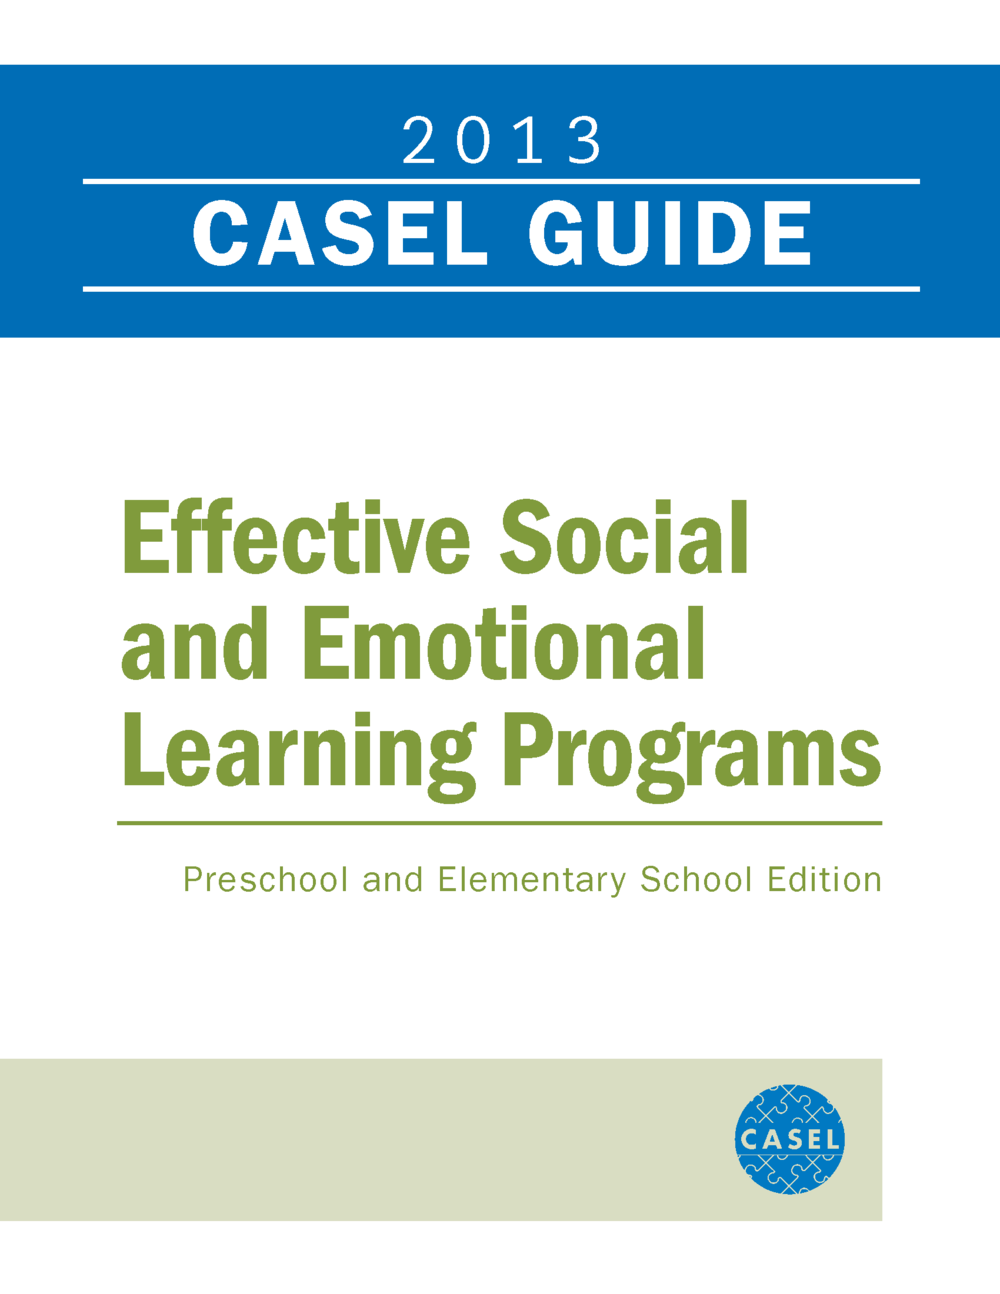 CASEL Guide Online Effective Social and Emotional Learning Programs